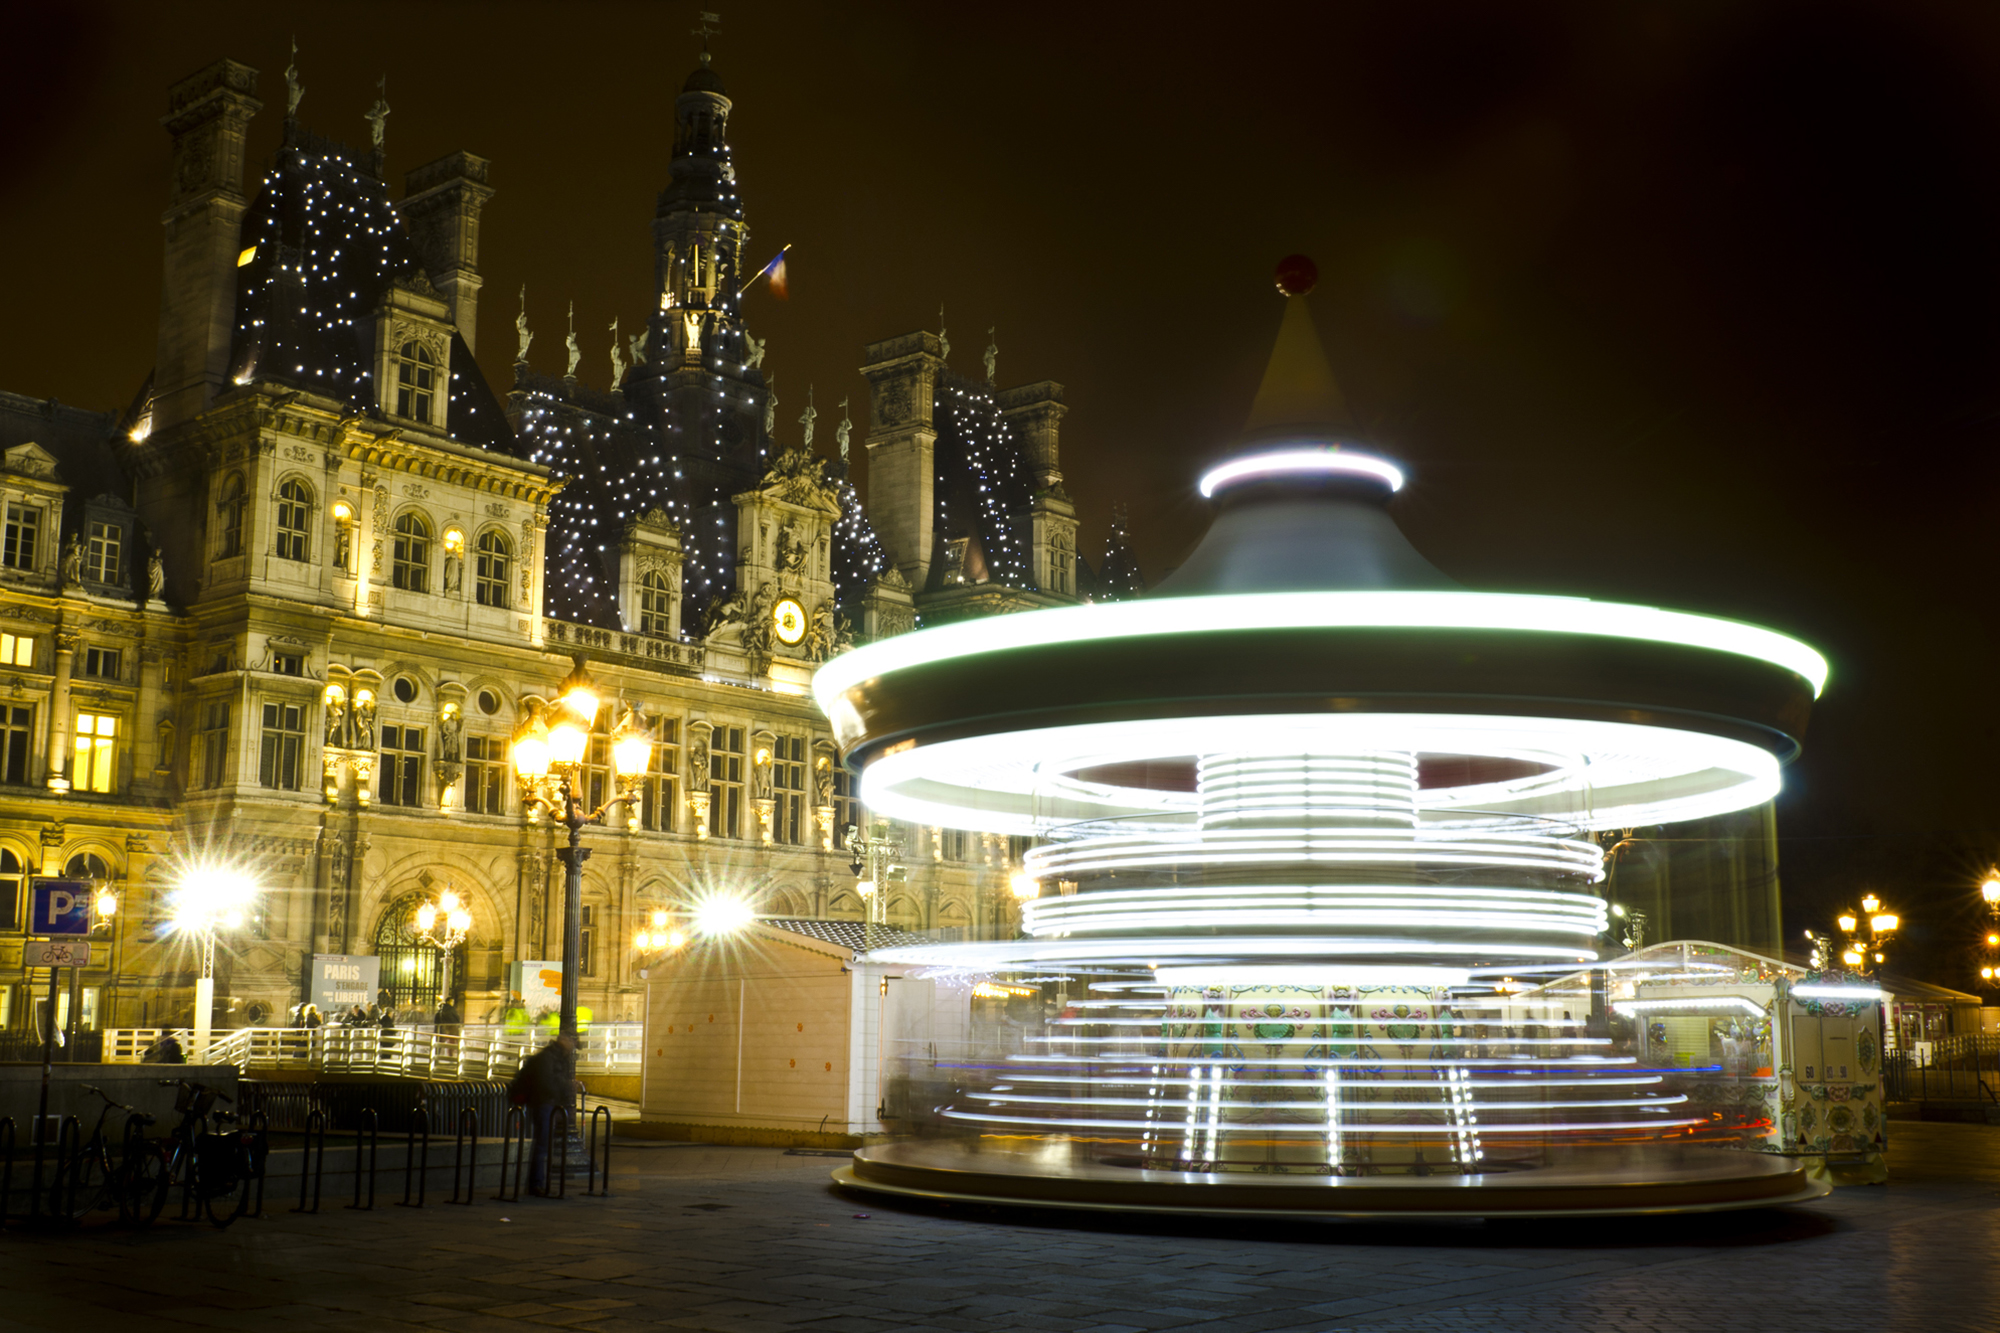 paris-night-photo-tour-008.jpg